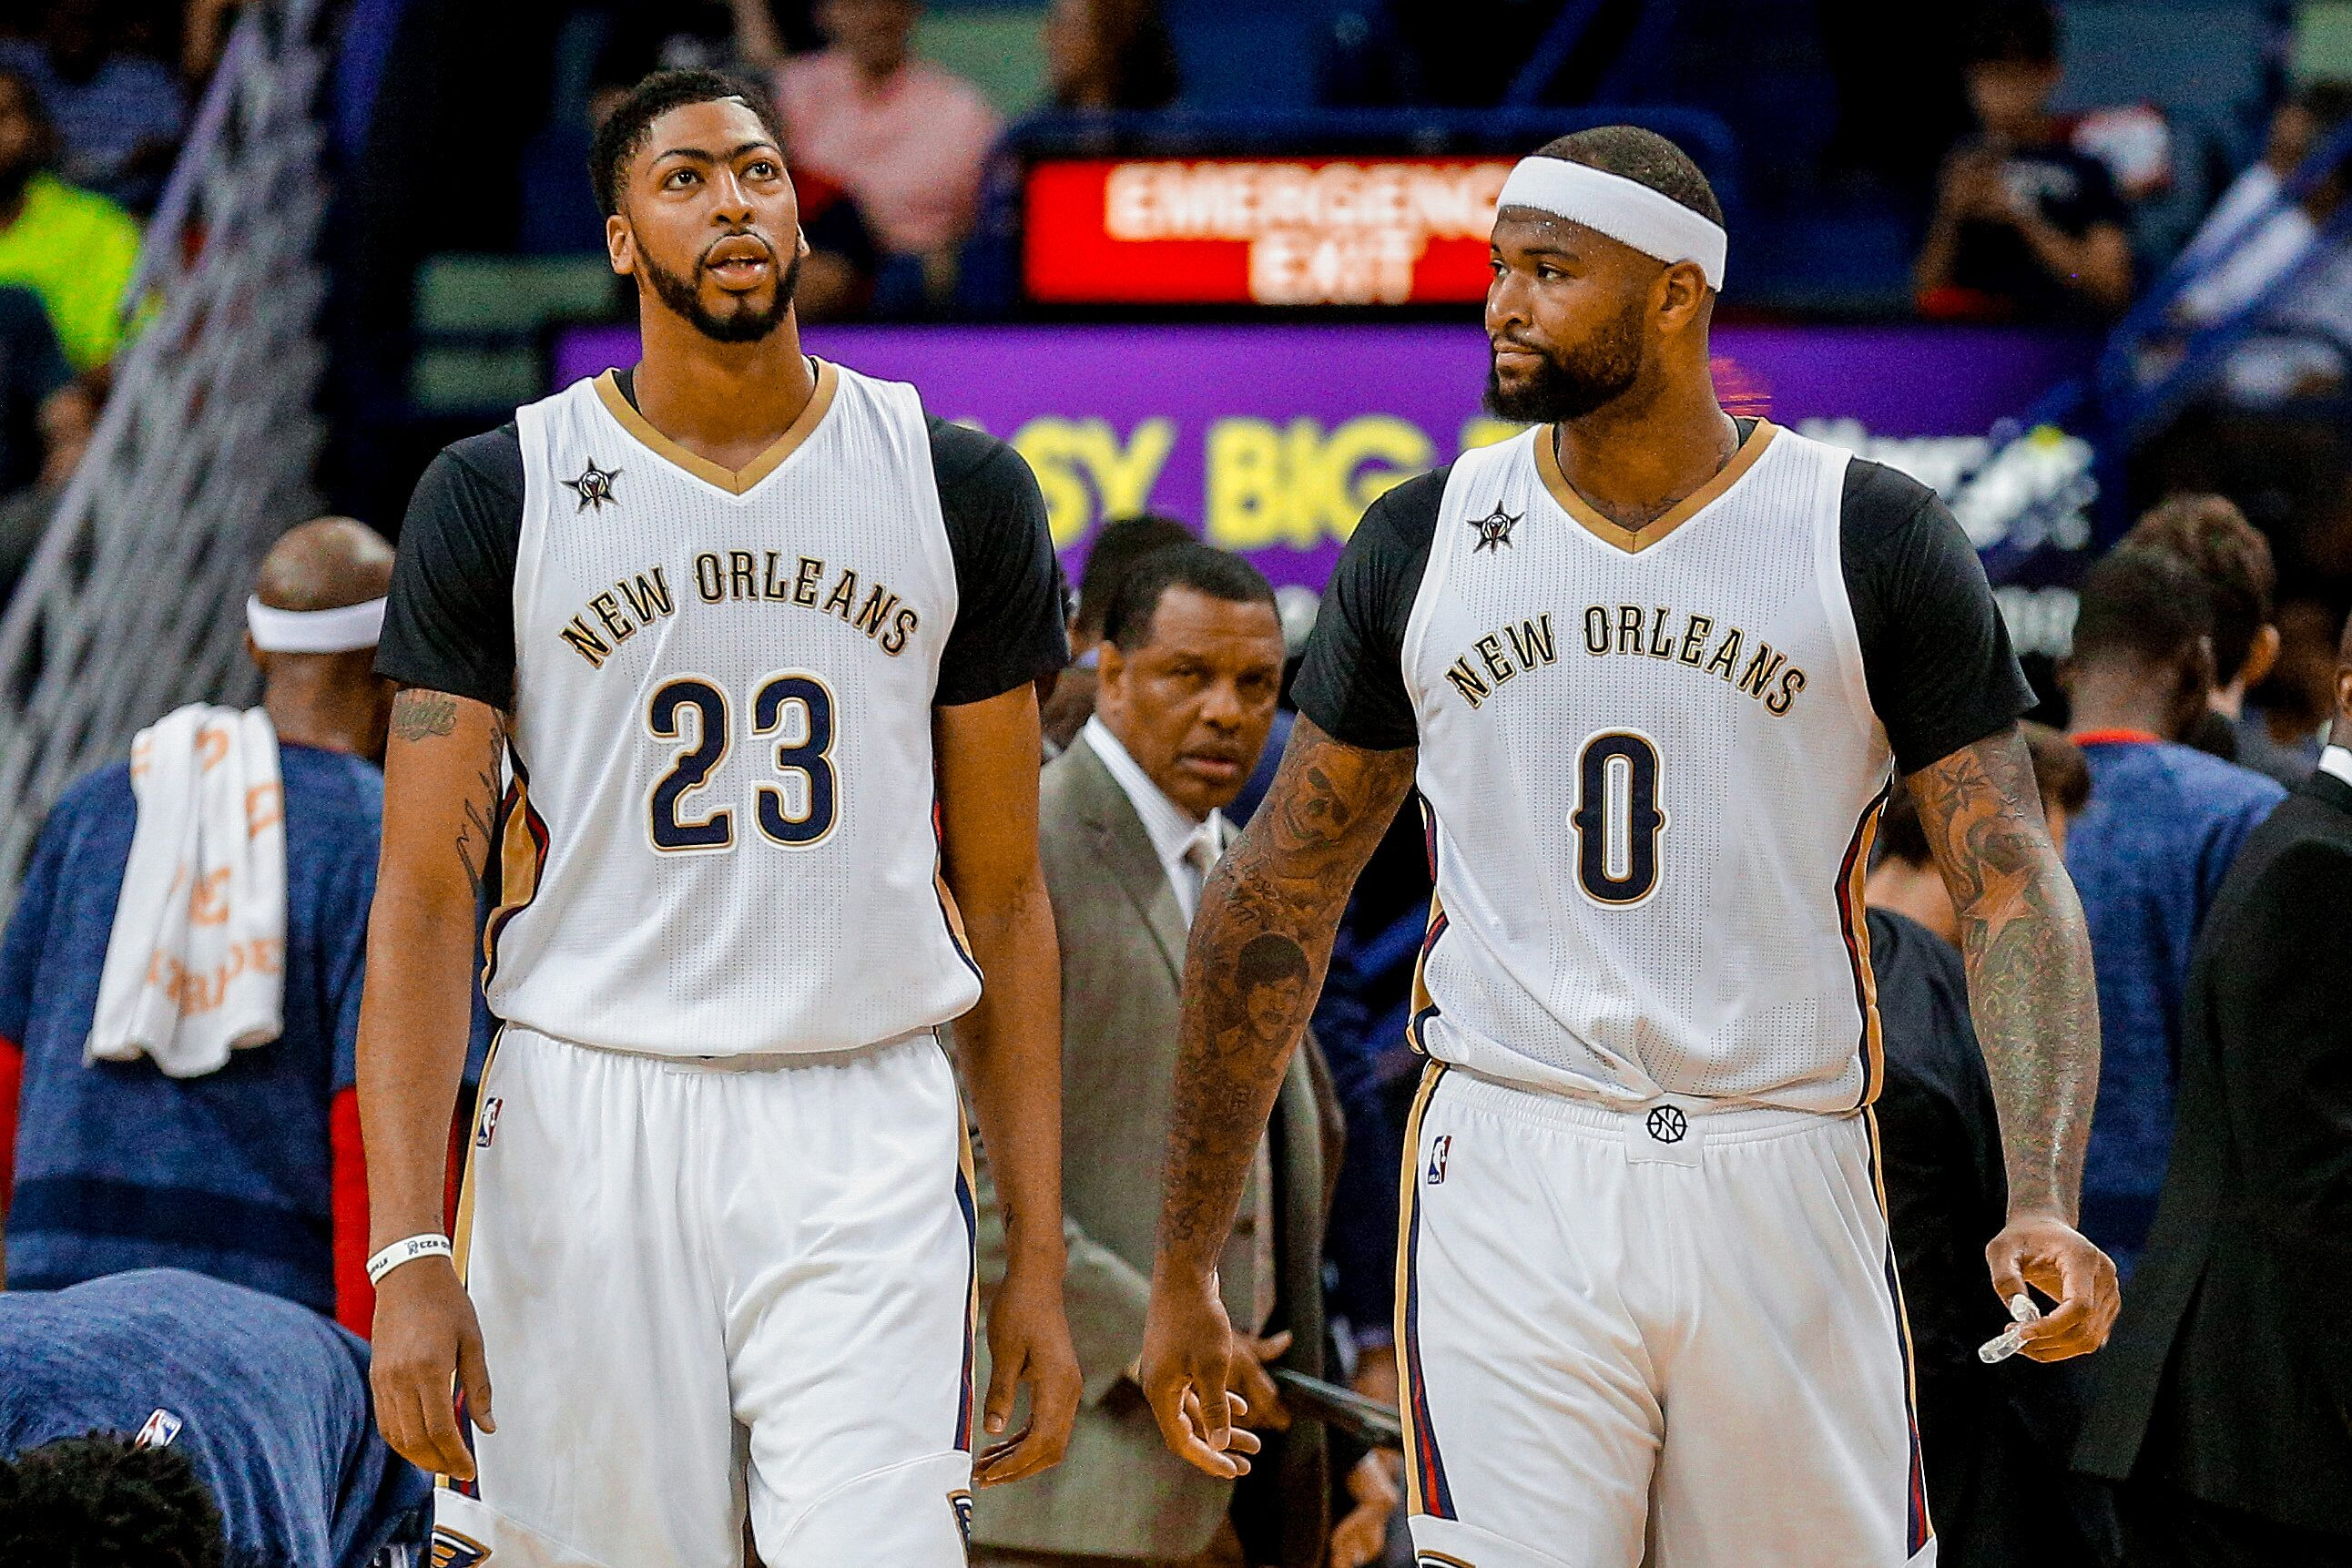 New Orleans Pelicans Season Review  DeMarcus Cousins b41c5f29f